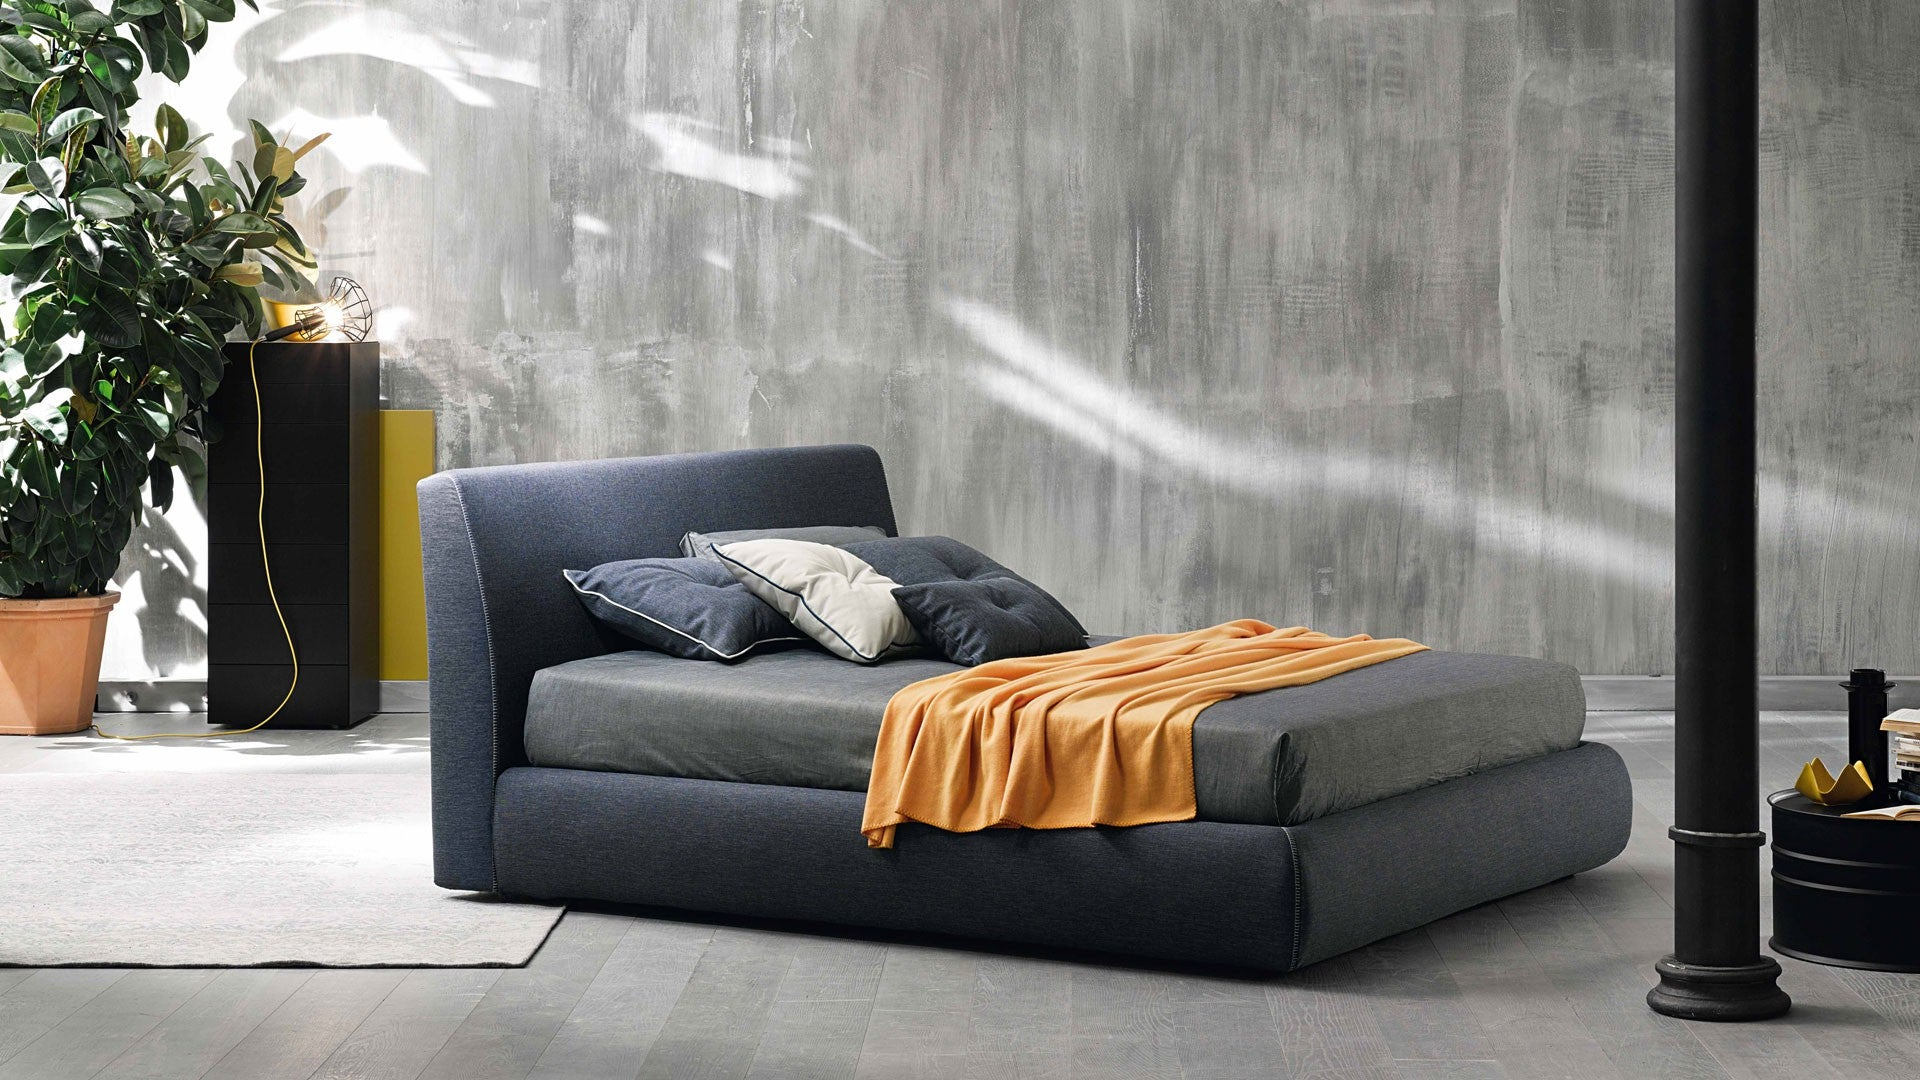 Break Bed - Designed in Italy